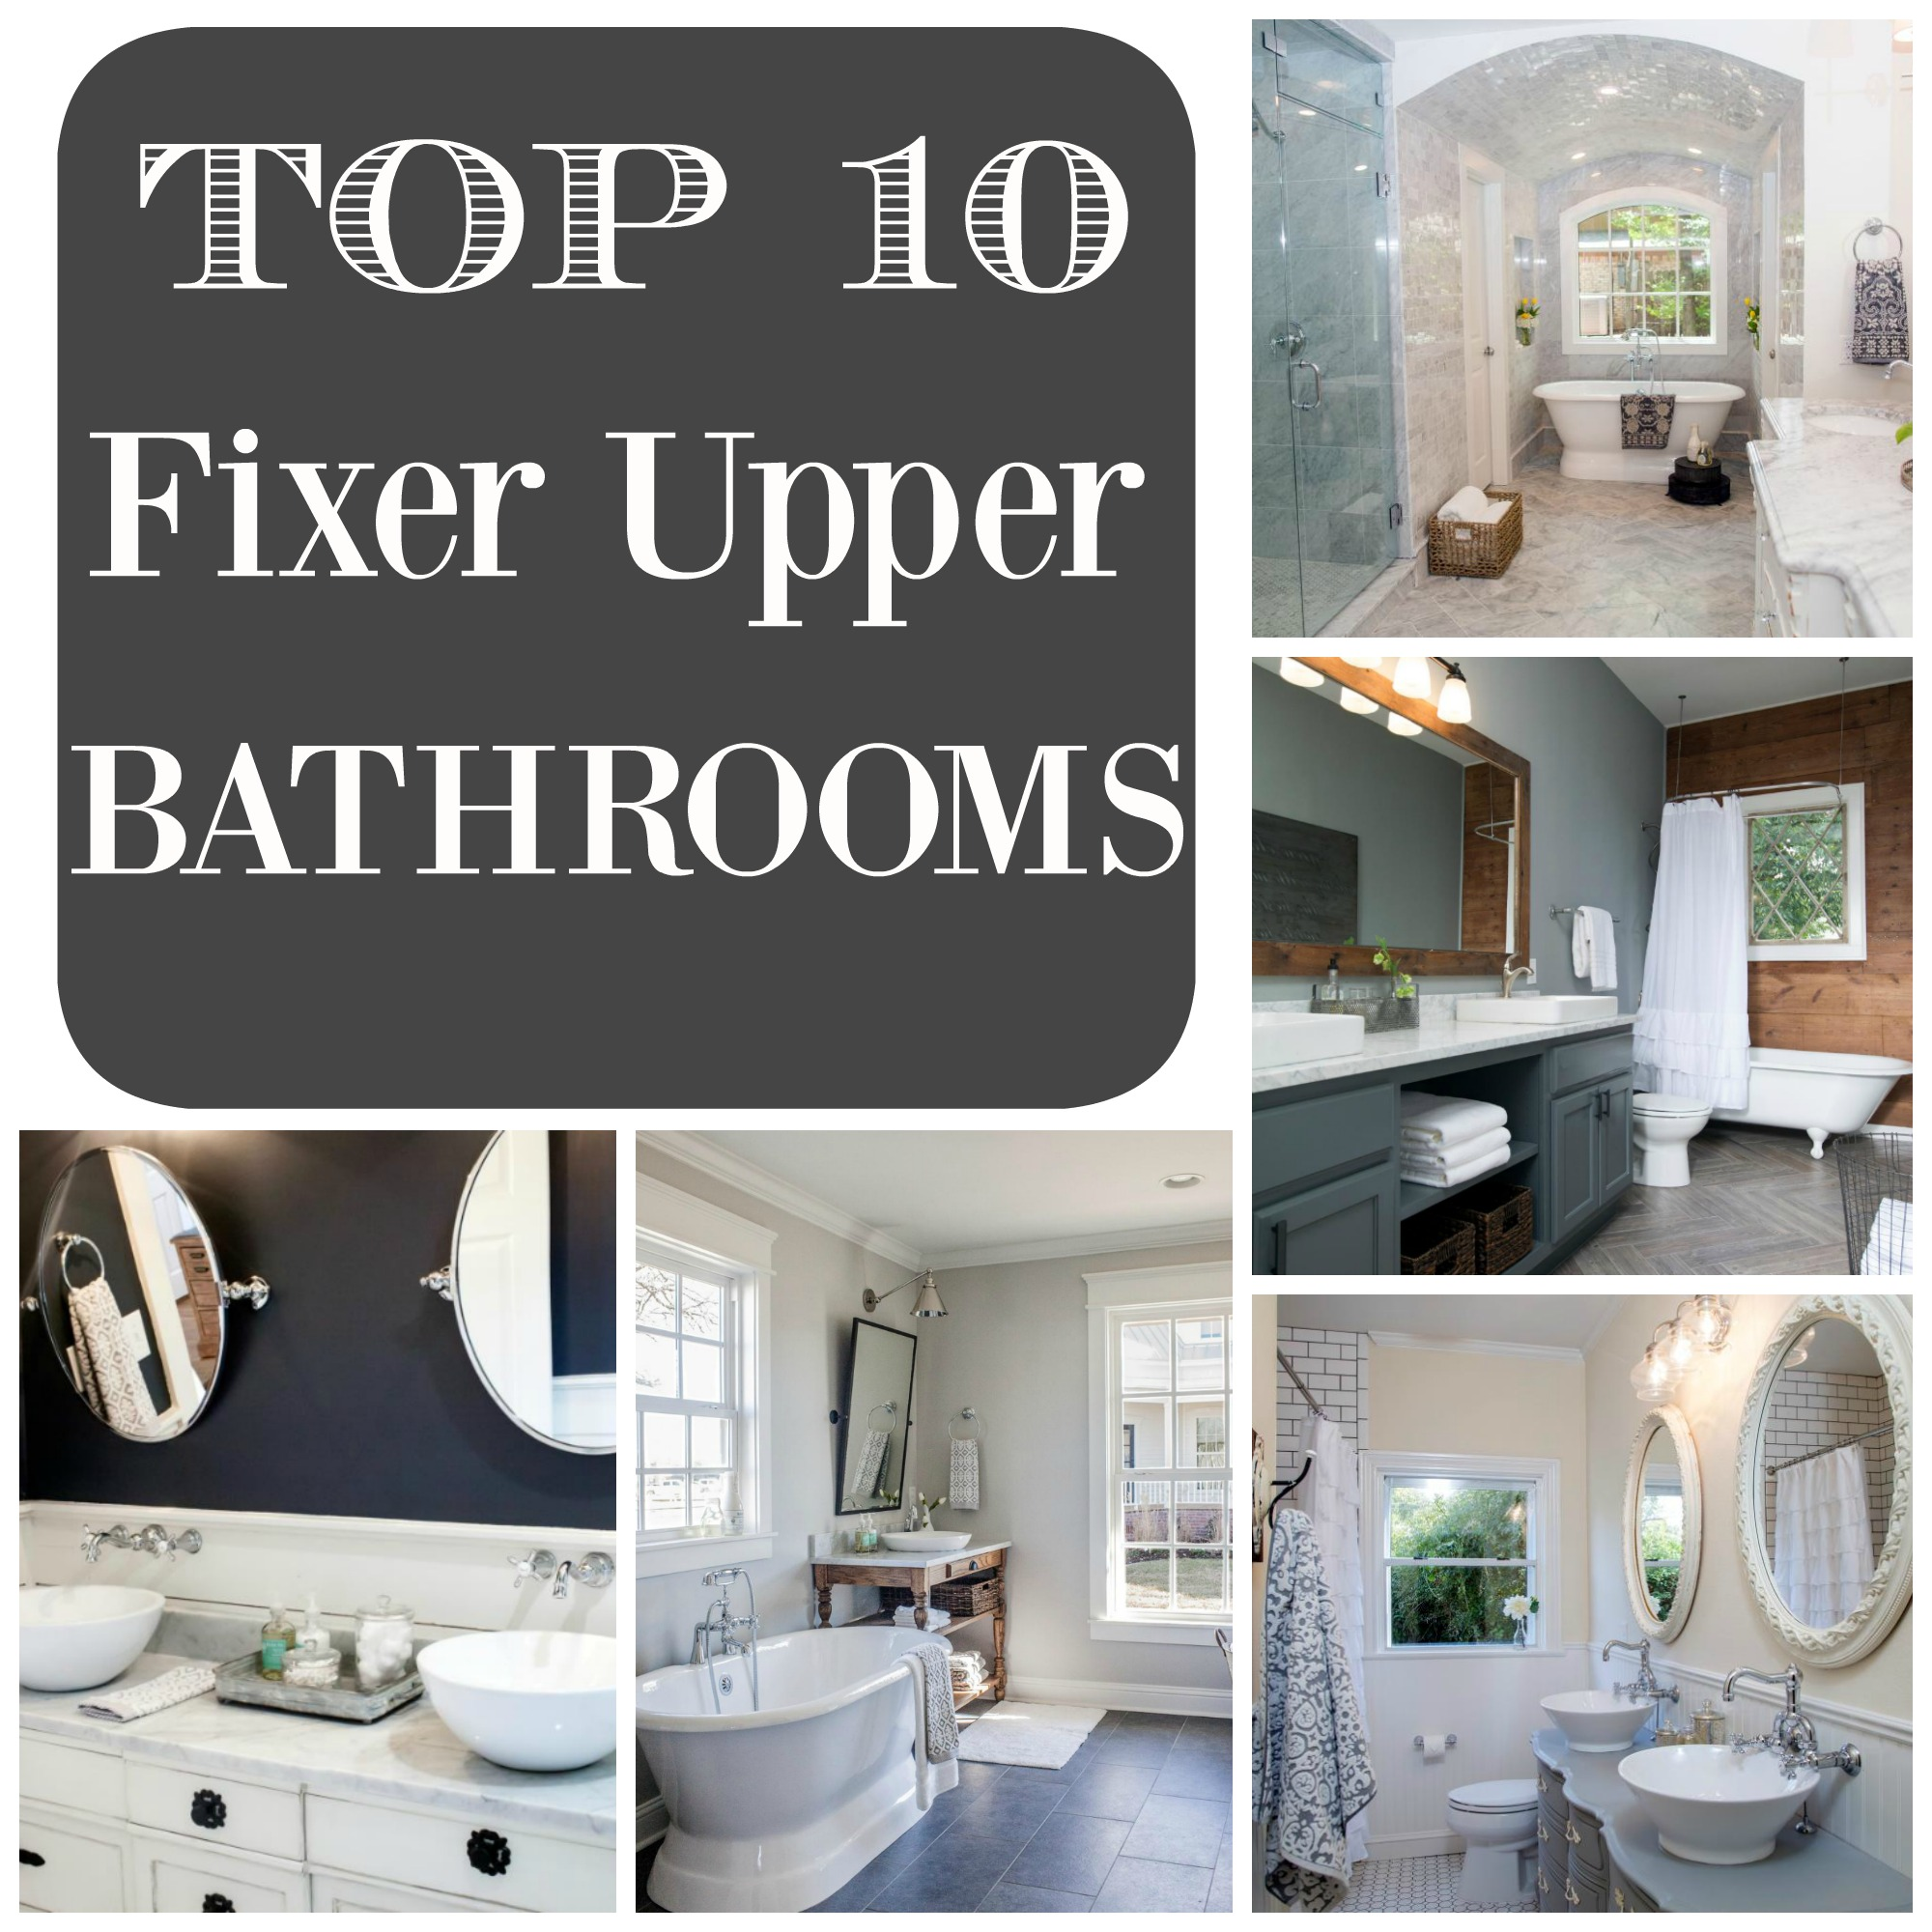 Top 8 Fixer Upper Bathrooms - Daily Dose of Style